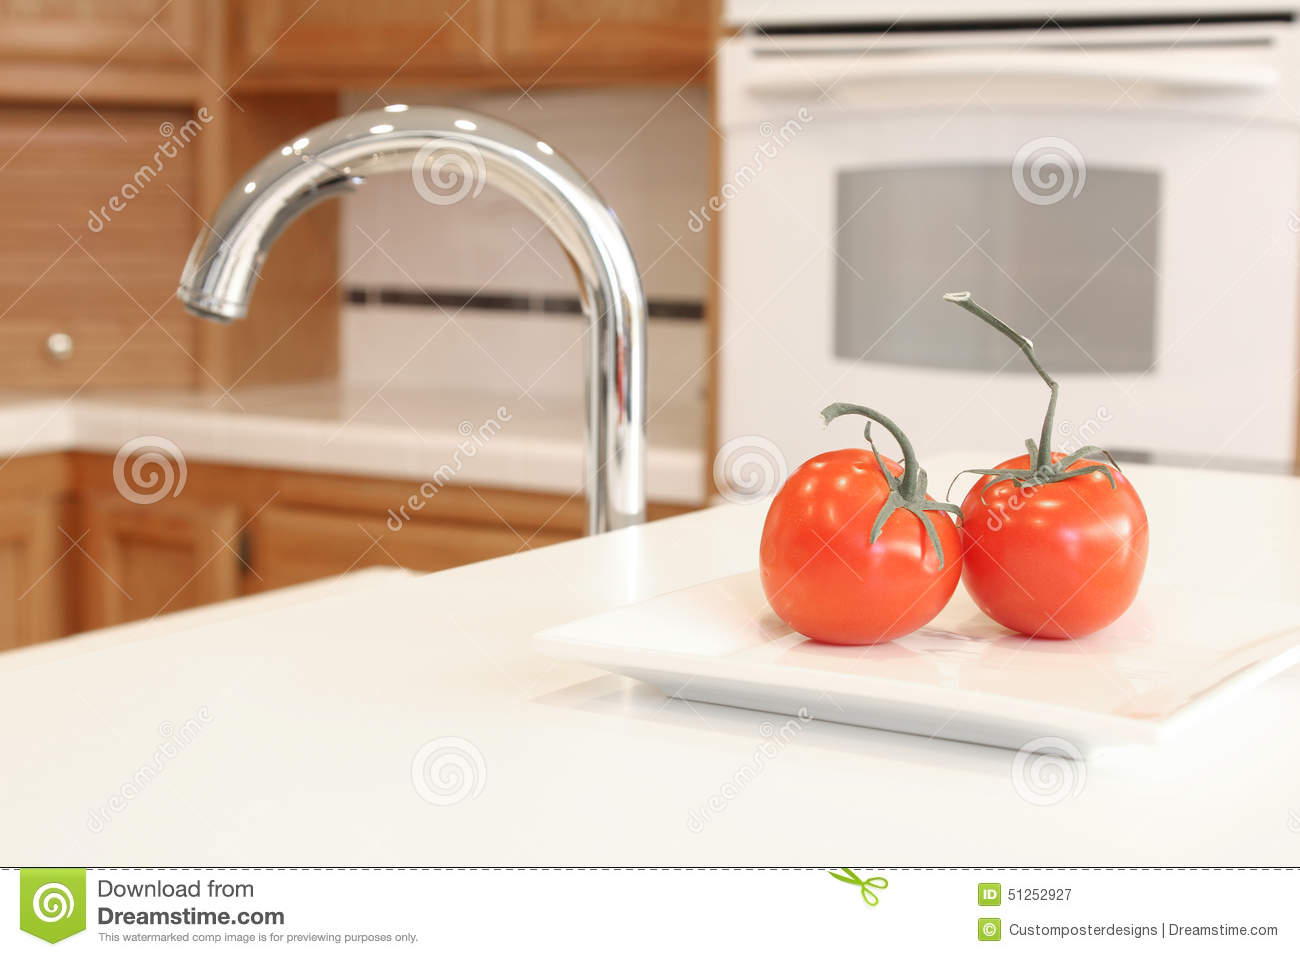 A clean white kitchen with two red tomatoes.